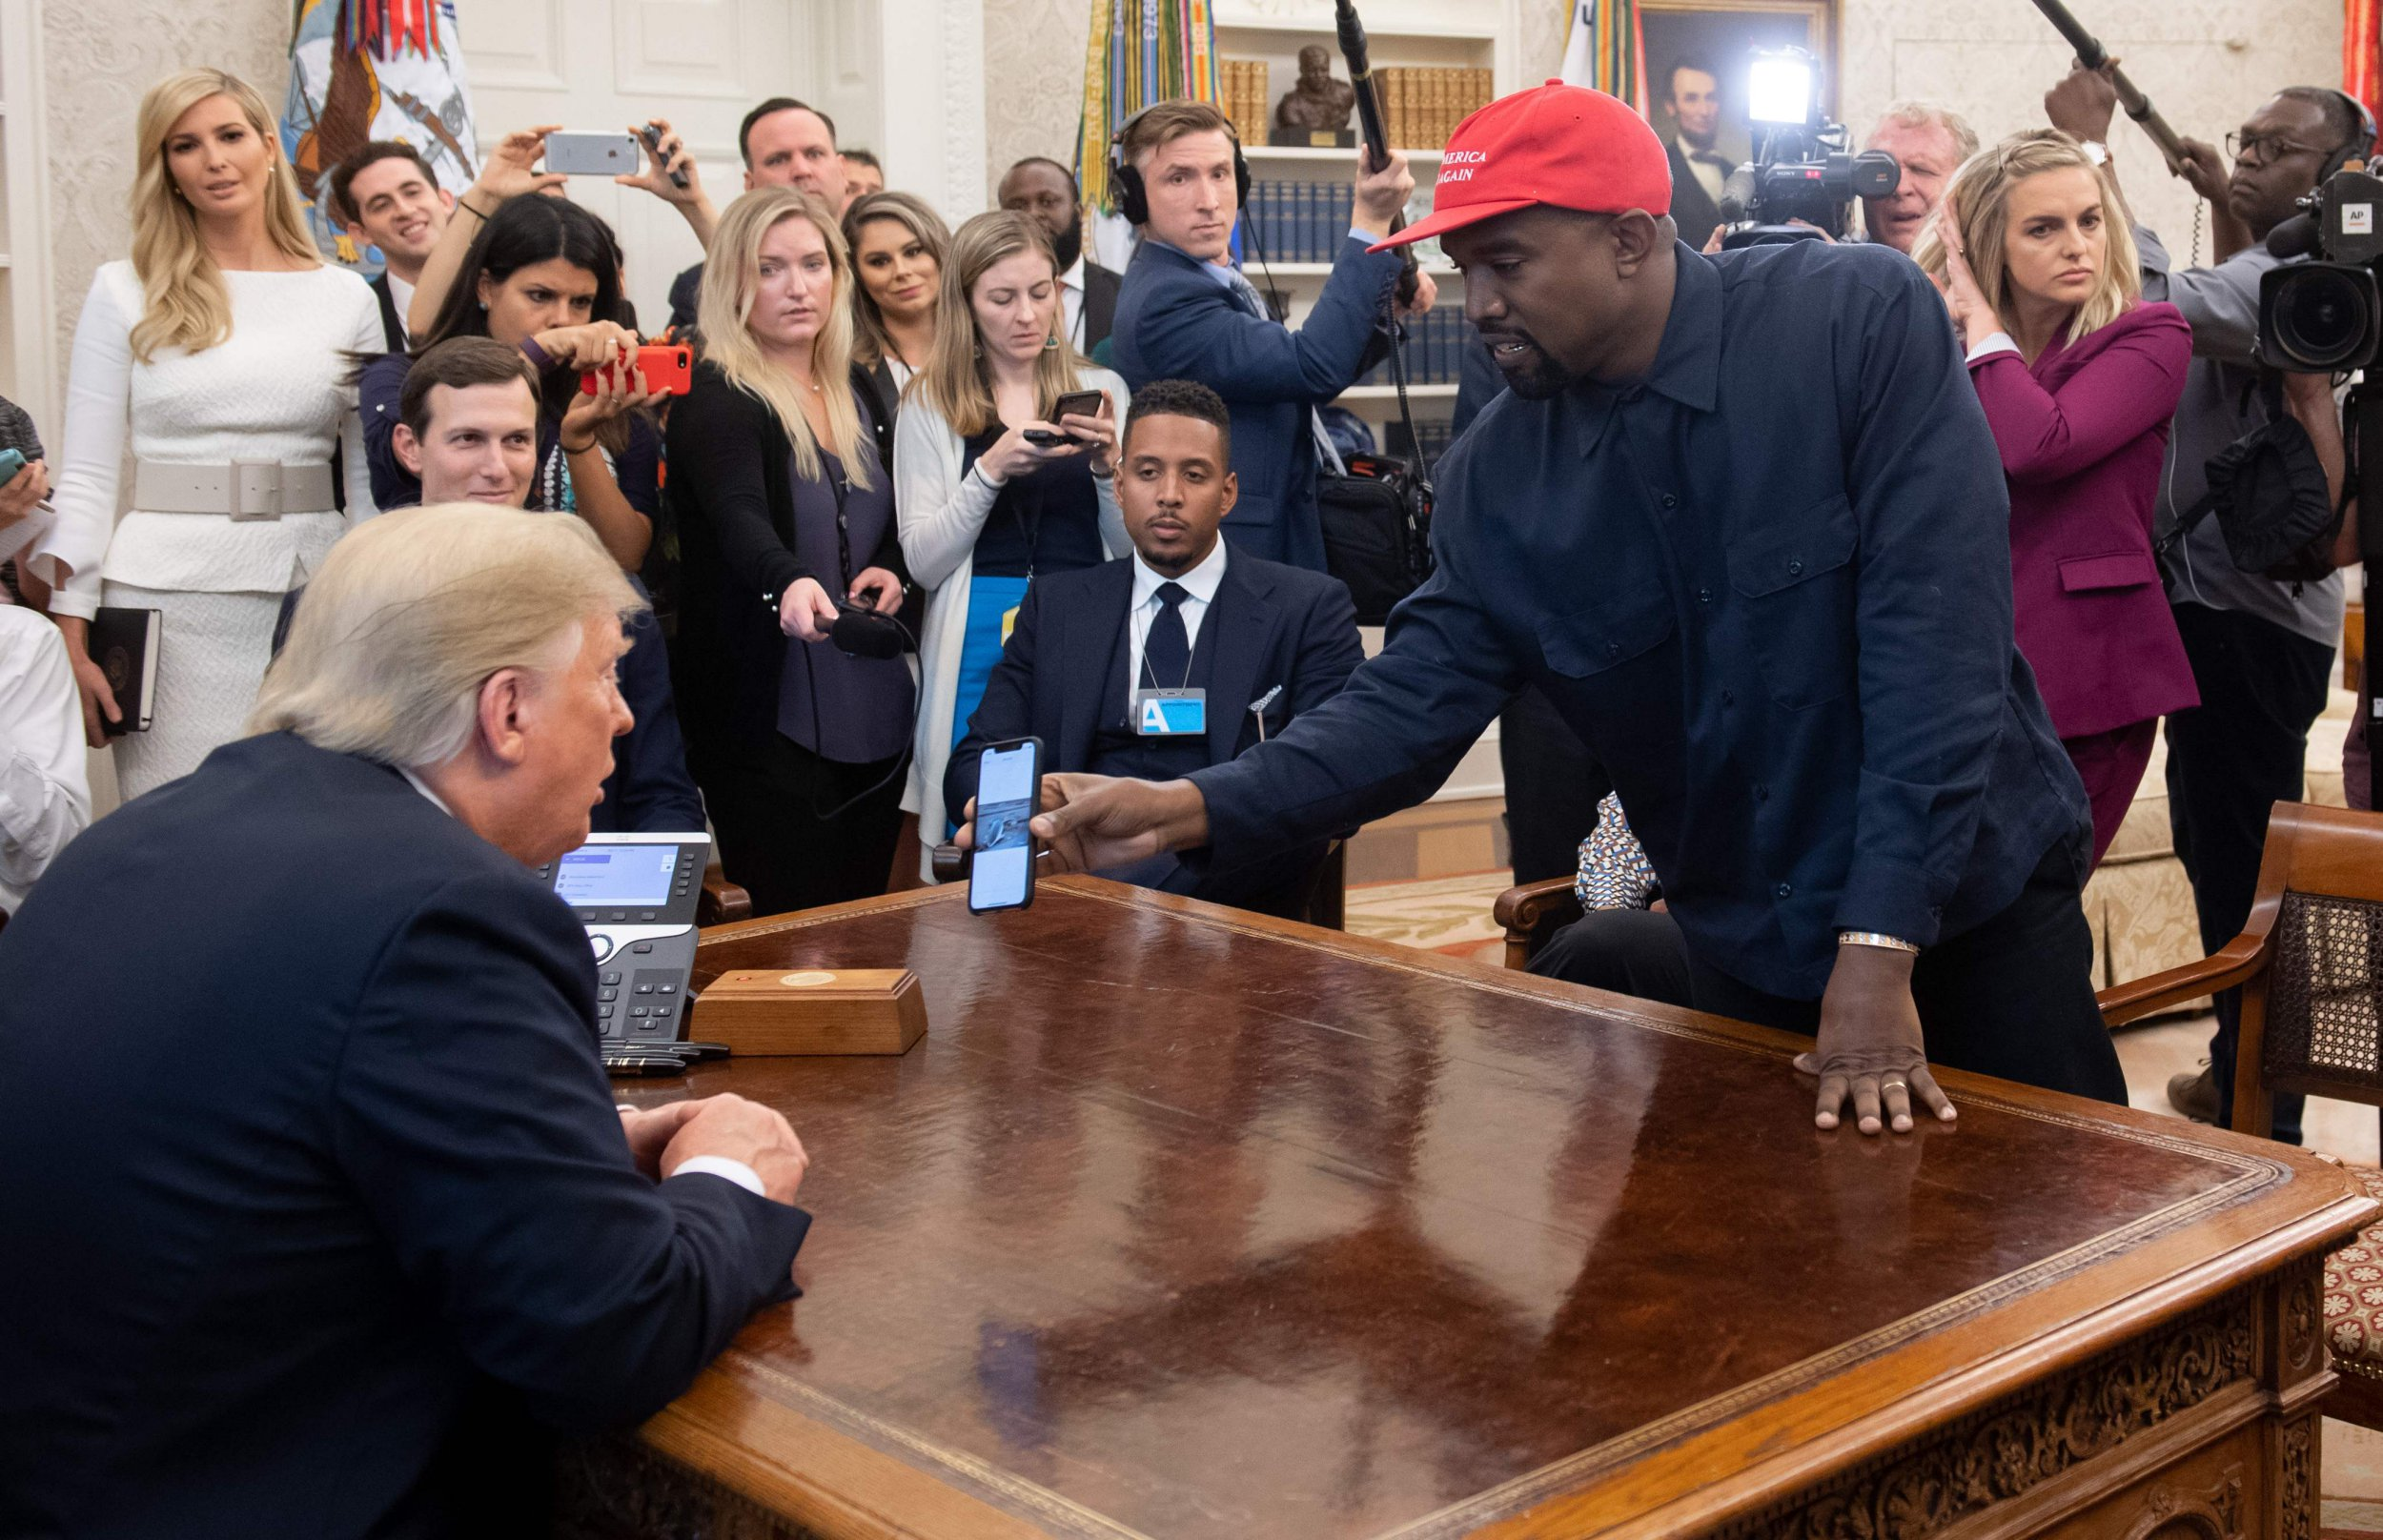 US President Donald Trump meets with rapper Kanye West (R) in the Oval Office of the White House in Washington, DC, on October 11, 2018. (Photo by SAUL LOEB / AFP)SAUL LOEB/AFP/Getty Images